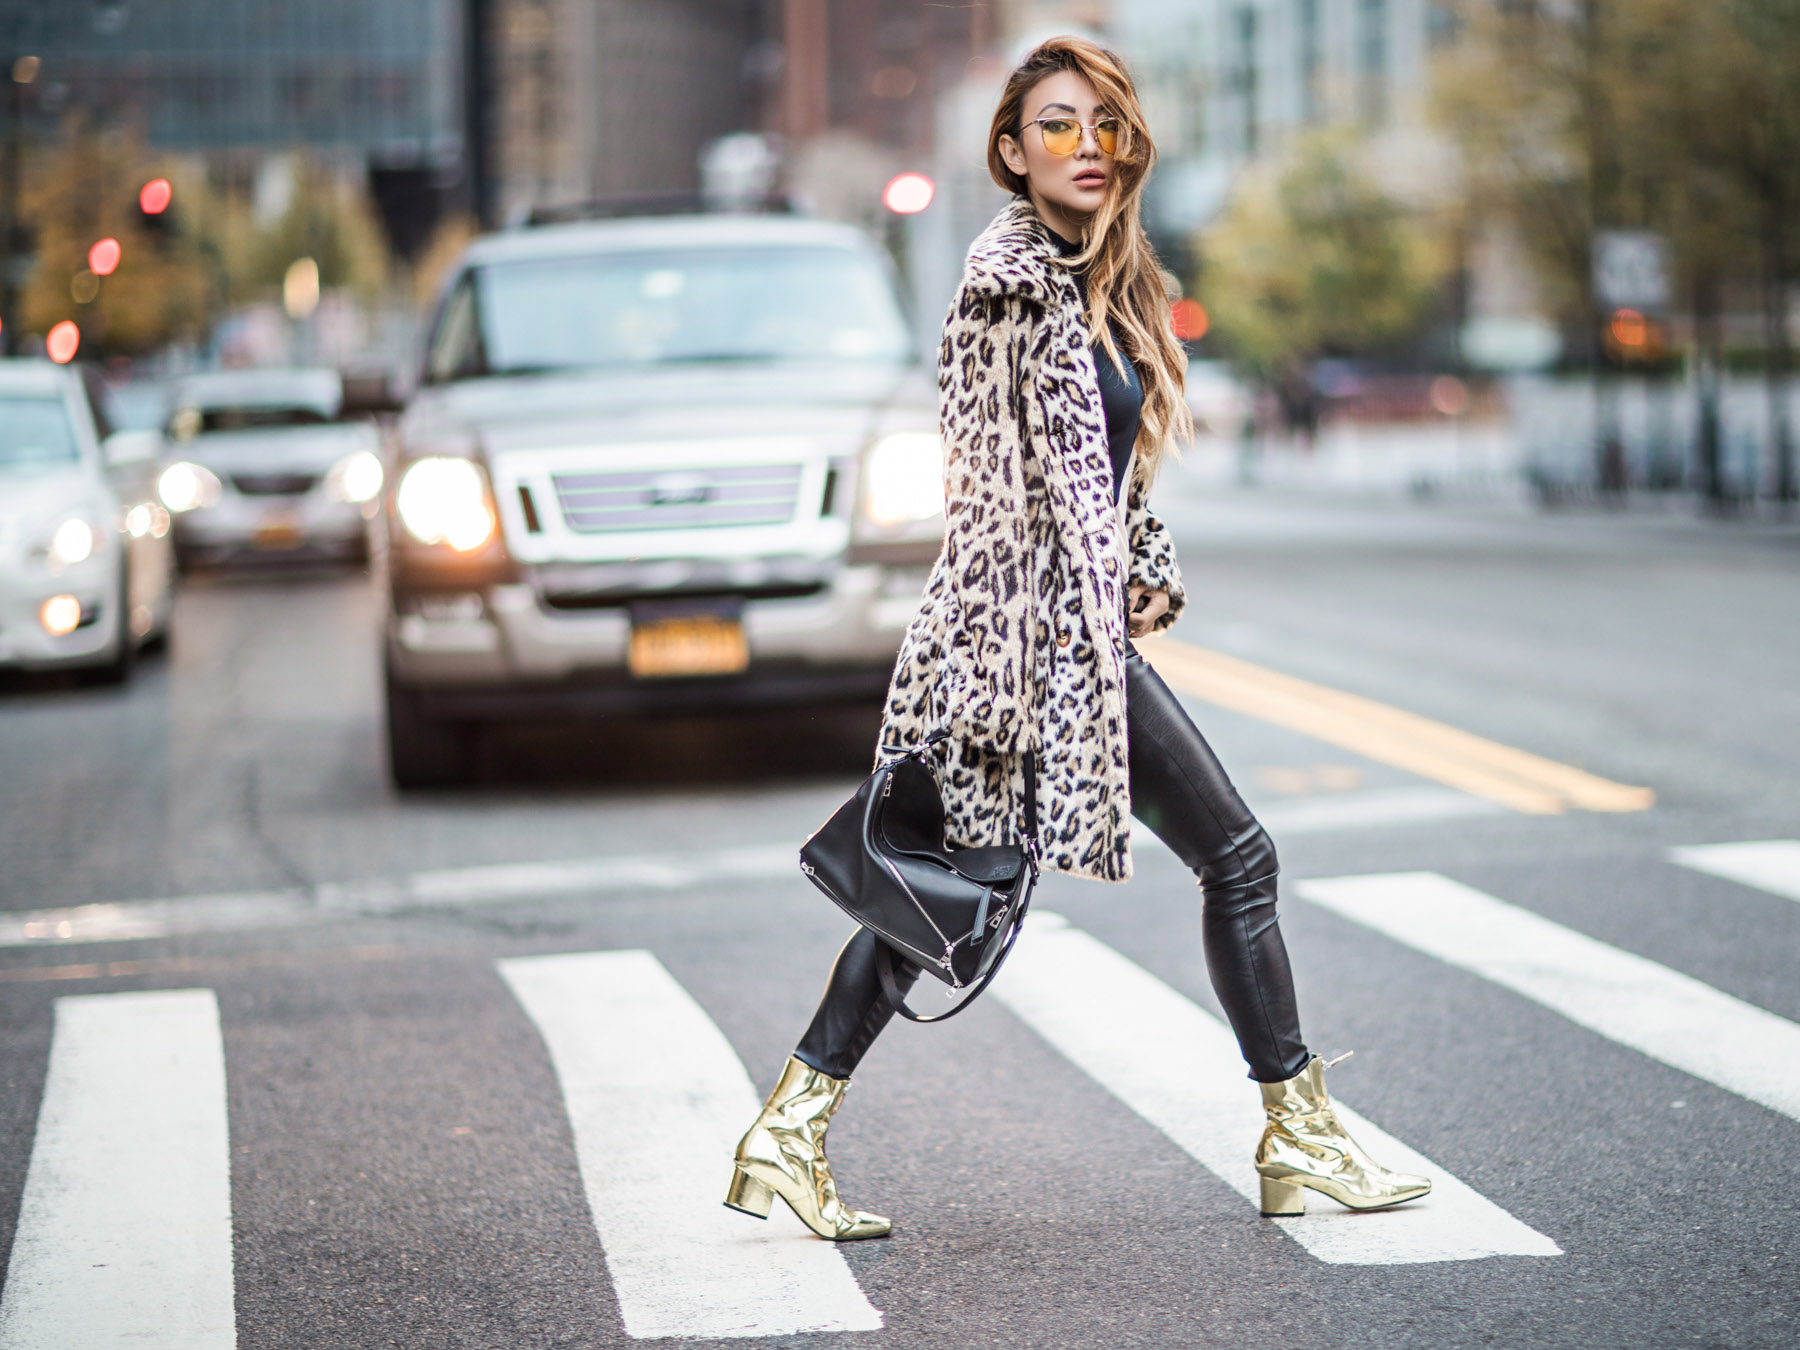 Essential Photography Tips for New Bloggers - Leopard coat, Leather Pants, and Gold Boots // Notjessfashion.com // yellow aviator sunglasses, winter style, winter outfit, layered outfit, street style fashion, fashion blogger street style, new york fashion blogger, faux fur leopard coat, faux fur coat, asian blogger, jessica wang, edgy style